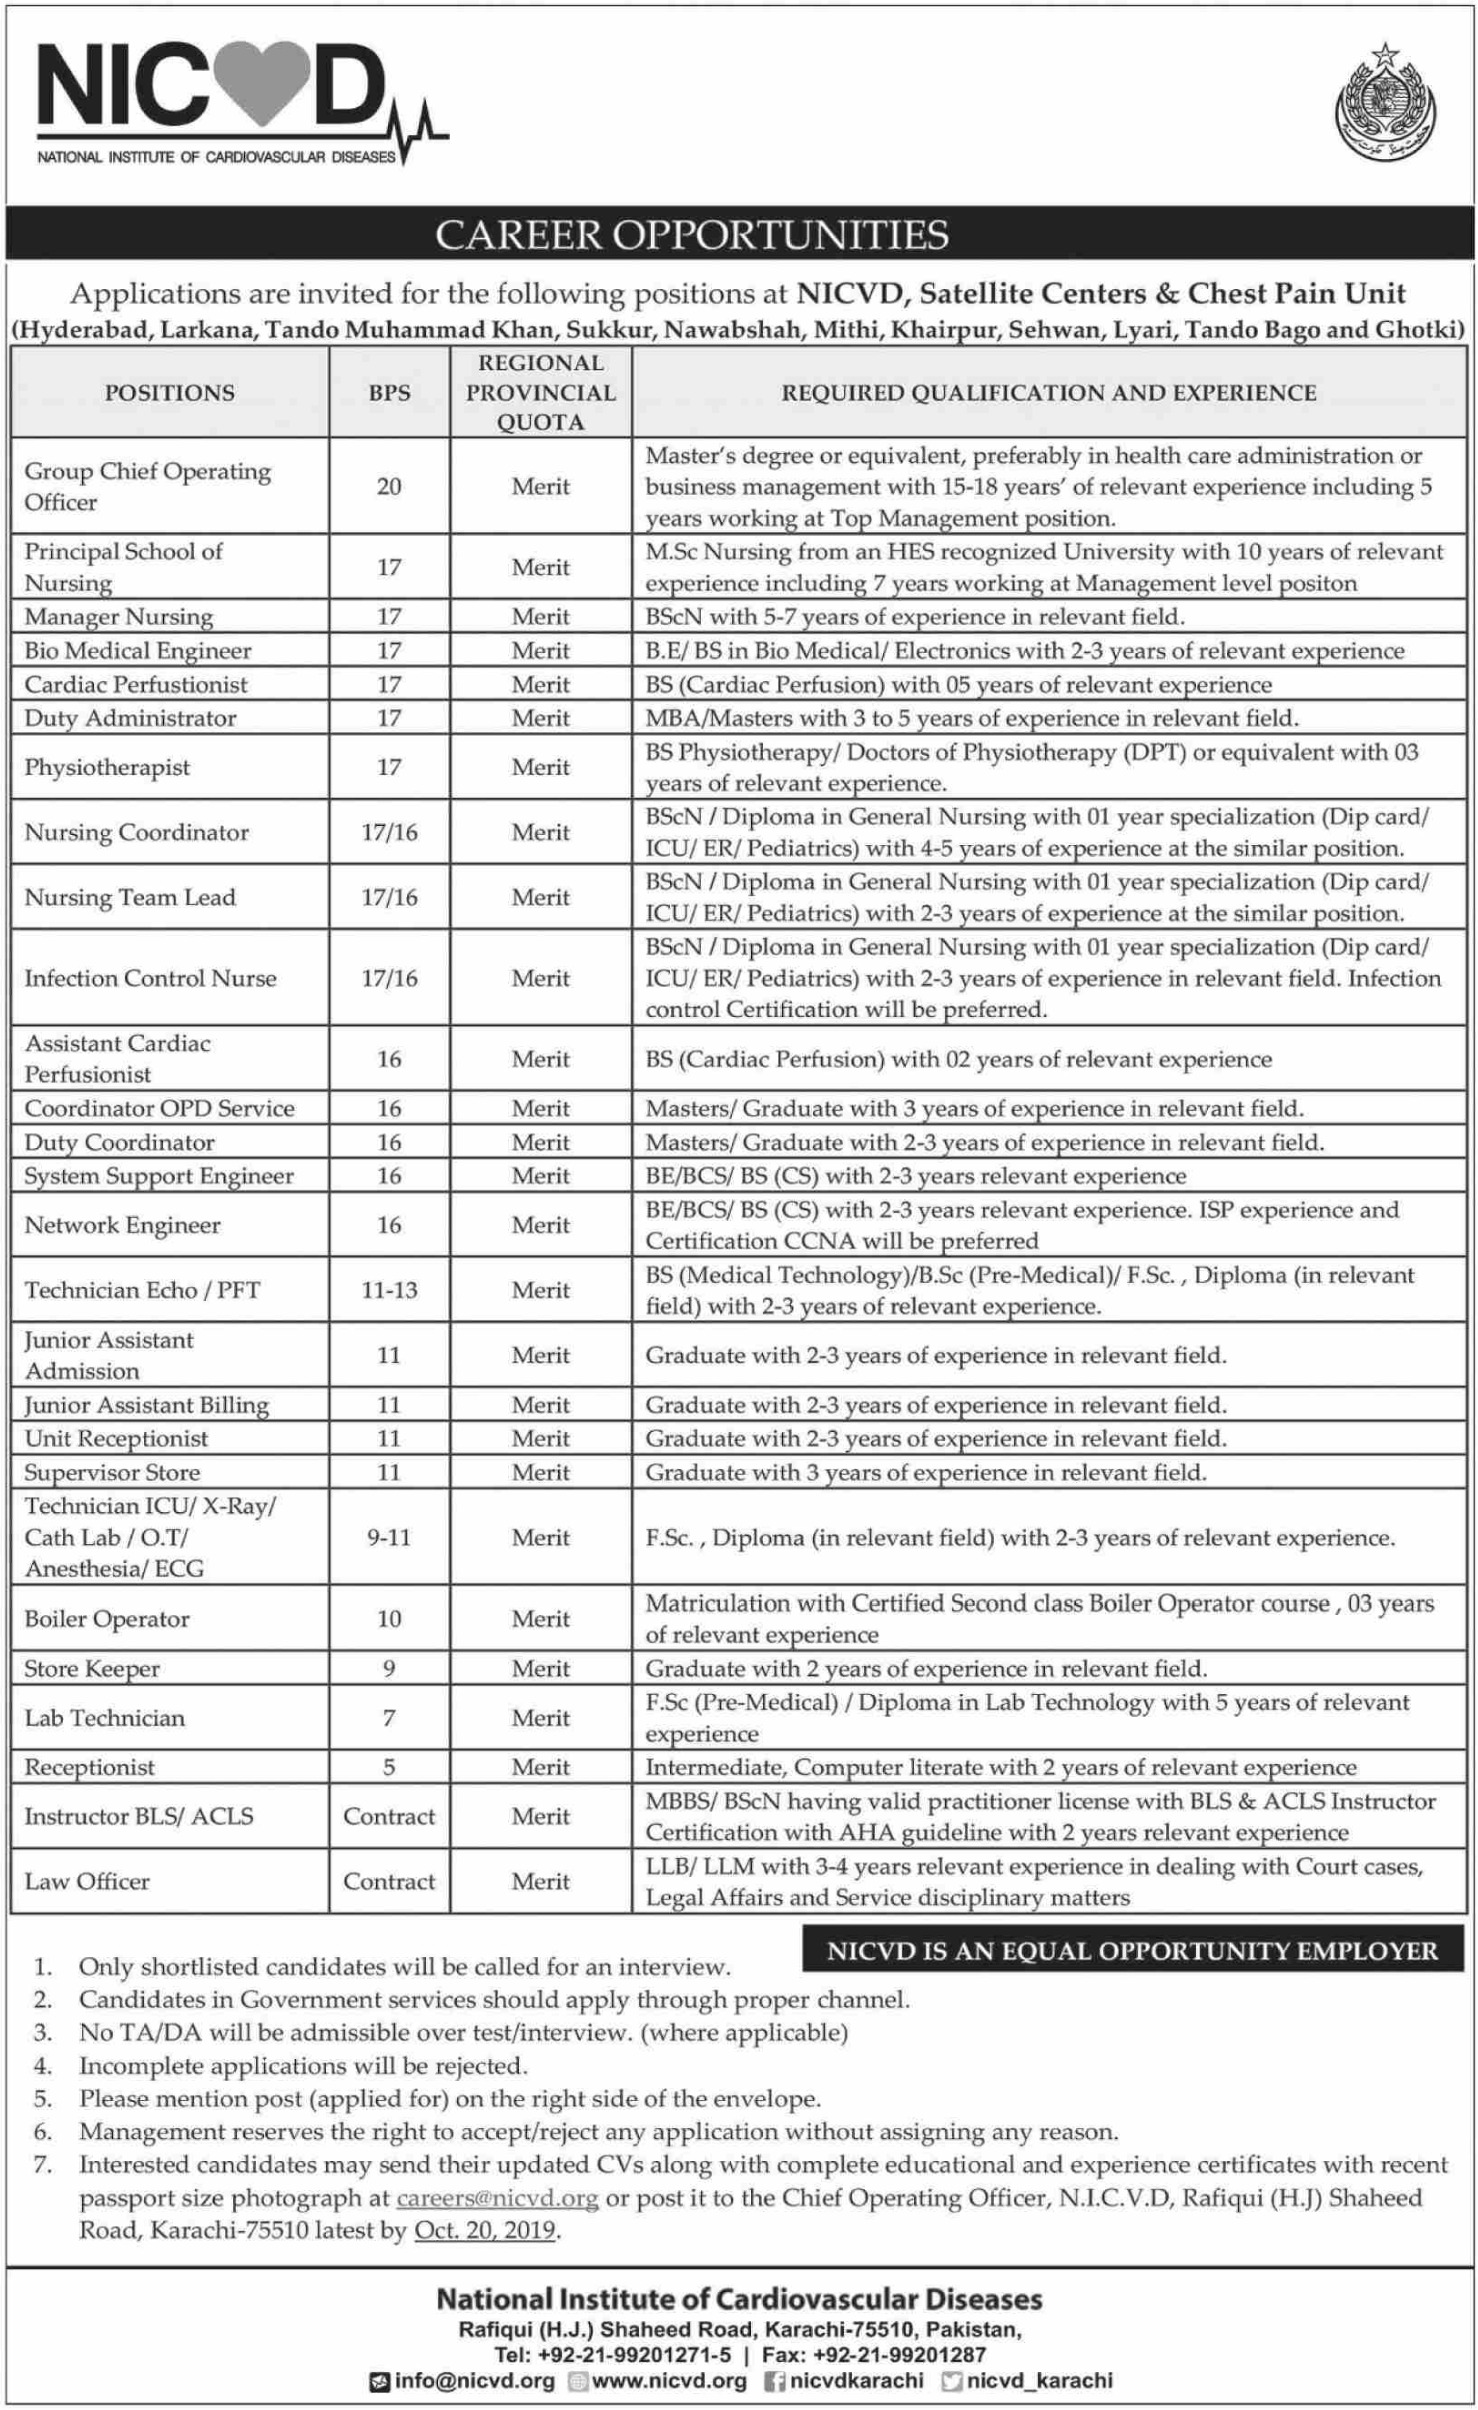 NICVD Jobs 2019 National Institute of Cardiovascular Diseases